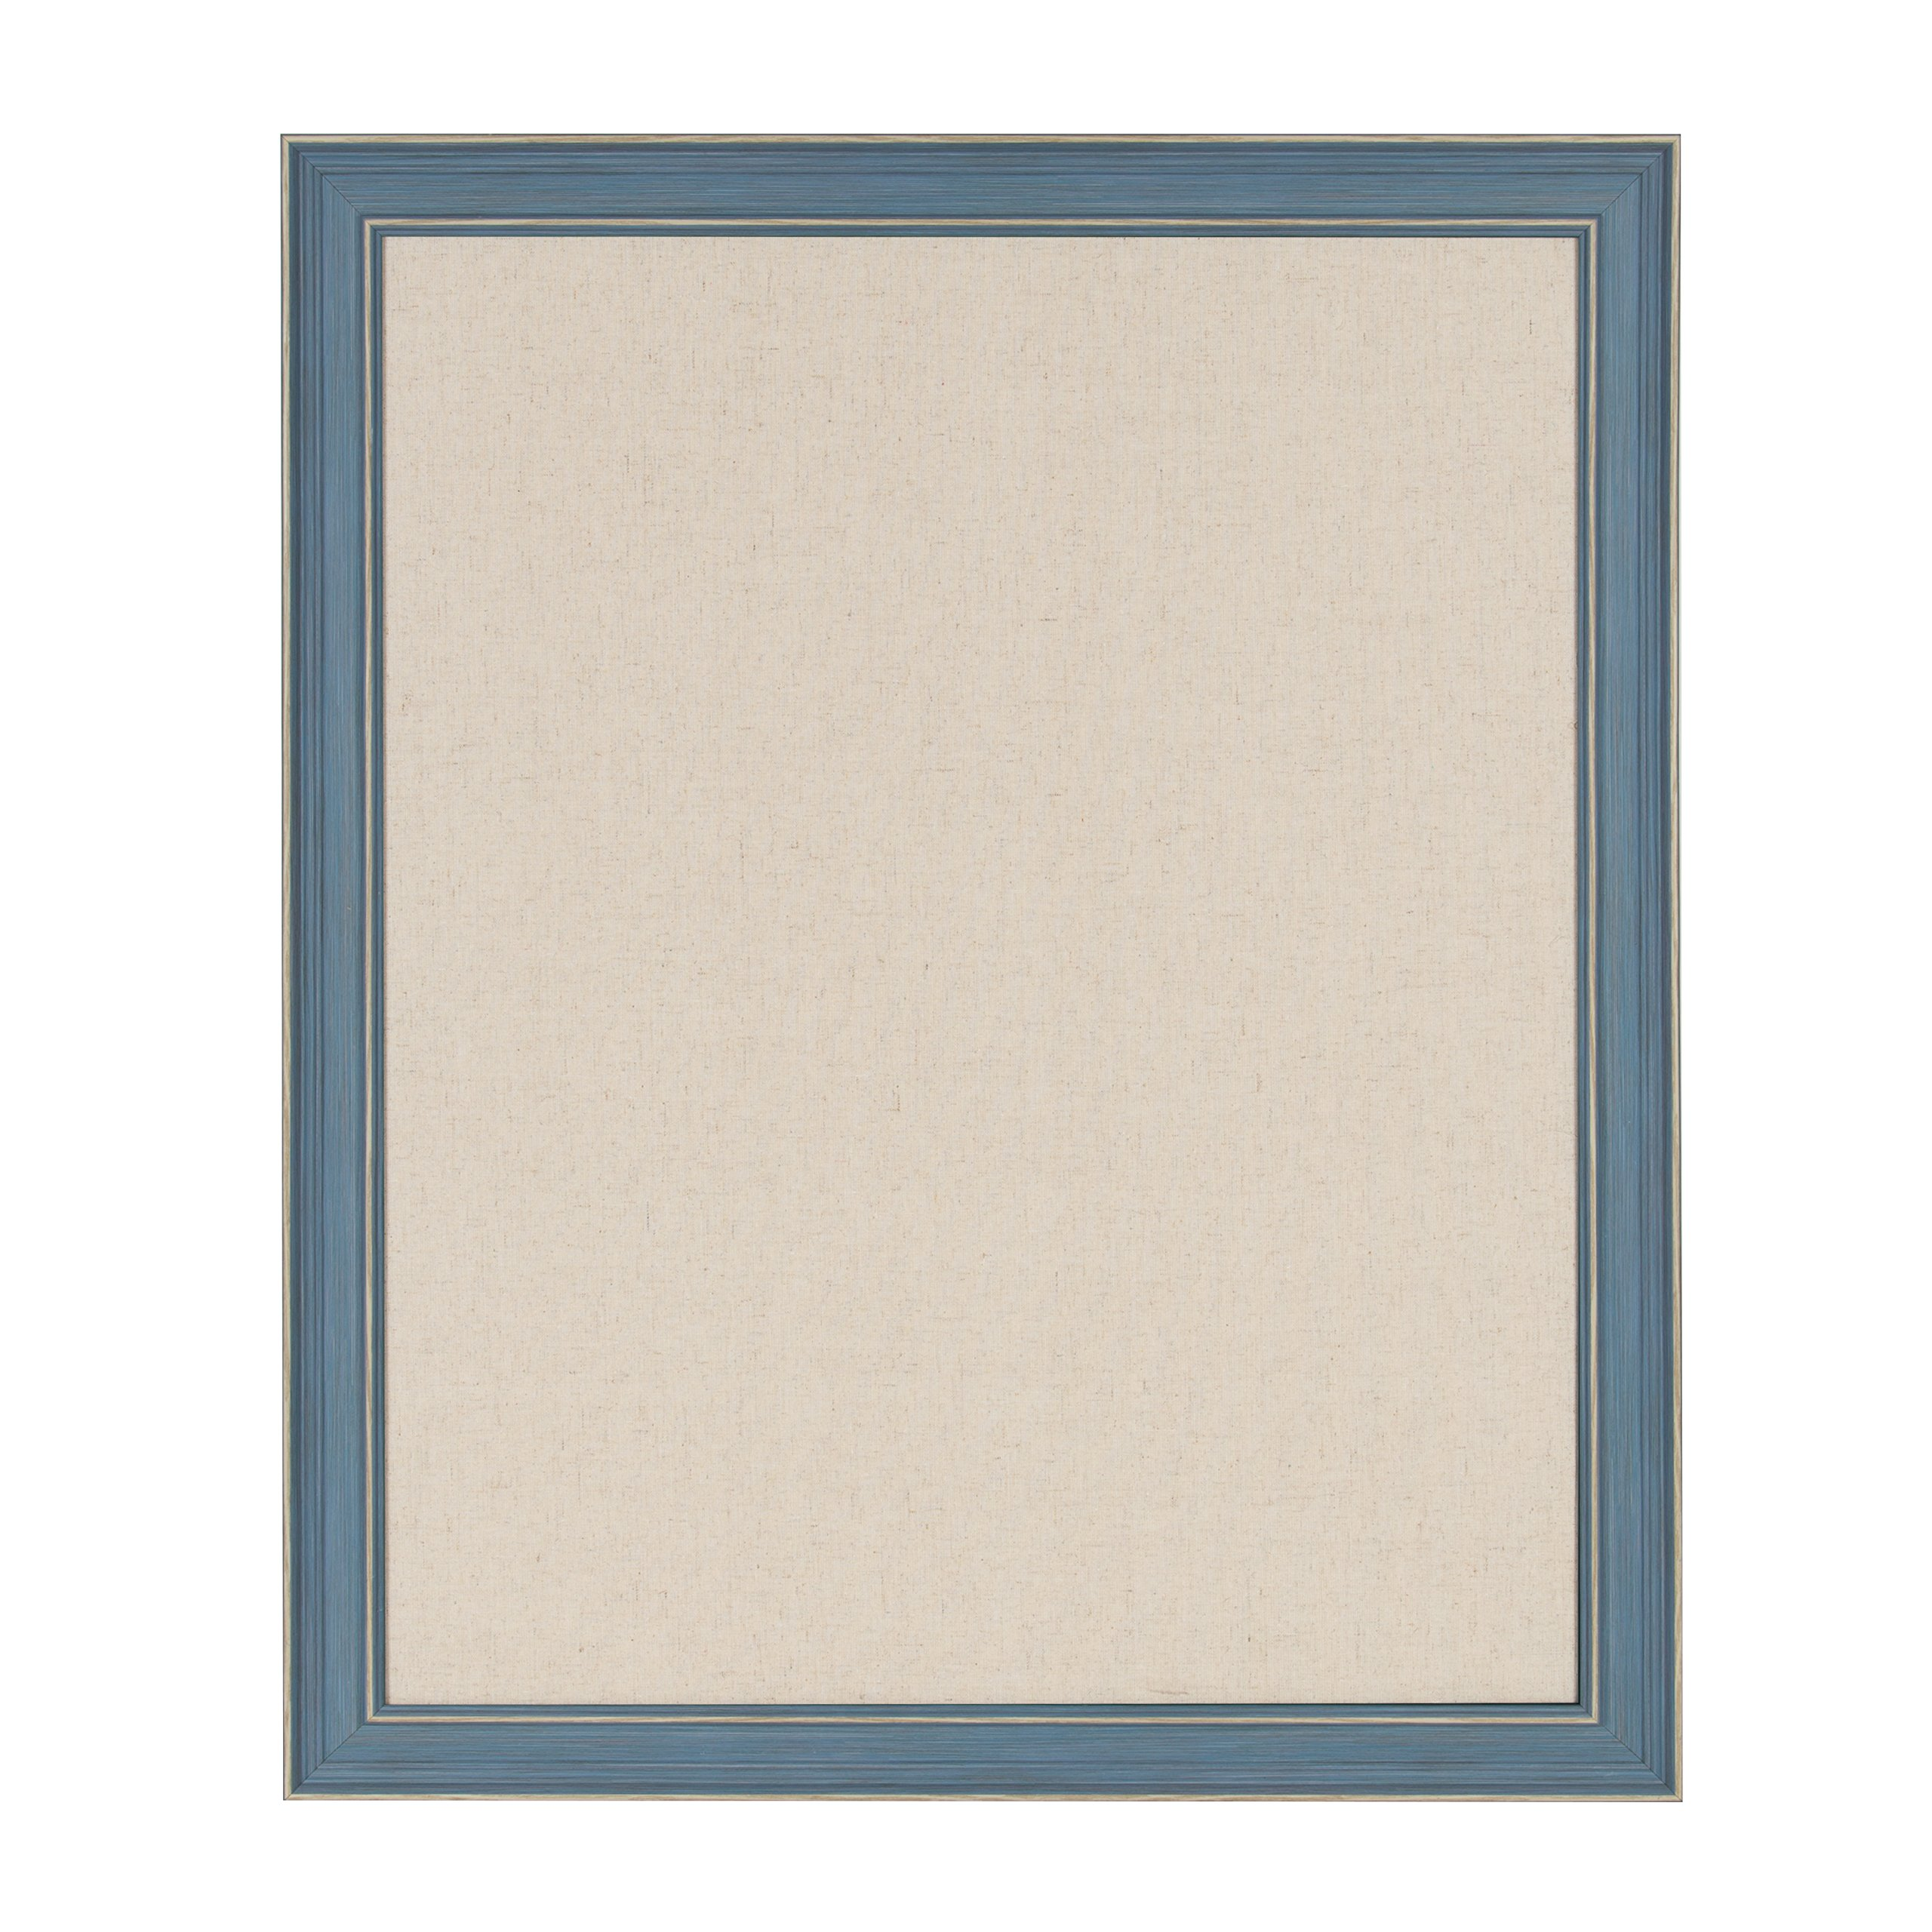 DesignOvation Harvest Framed Decorative Pinboard, 27.5x33.5 Inches, Rustic Blue by DesignOvation